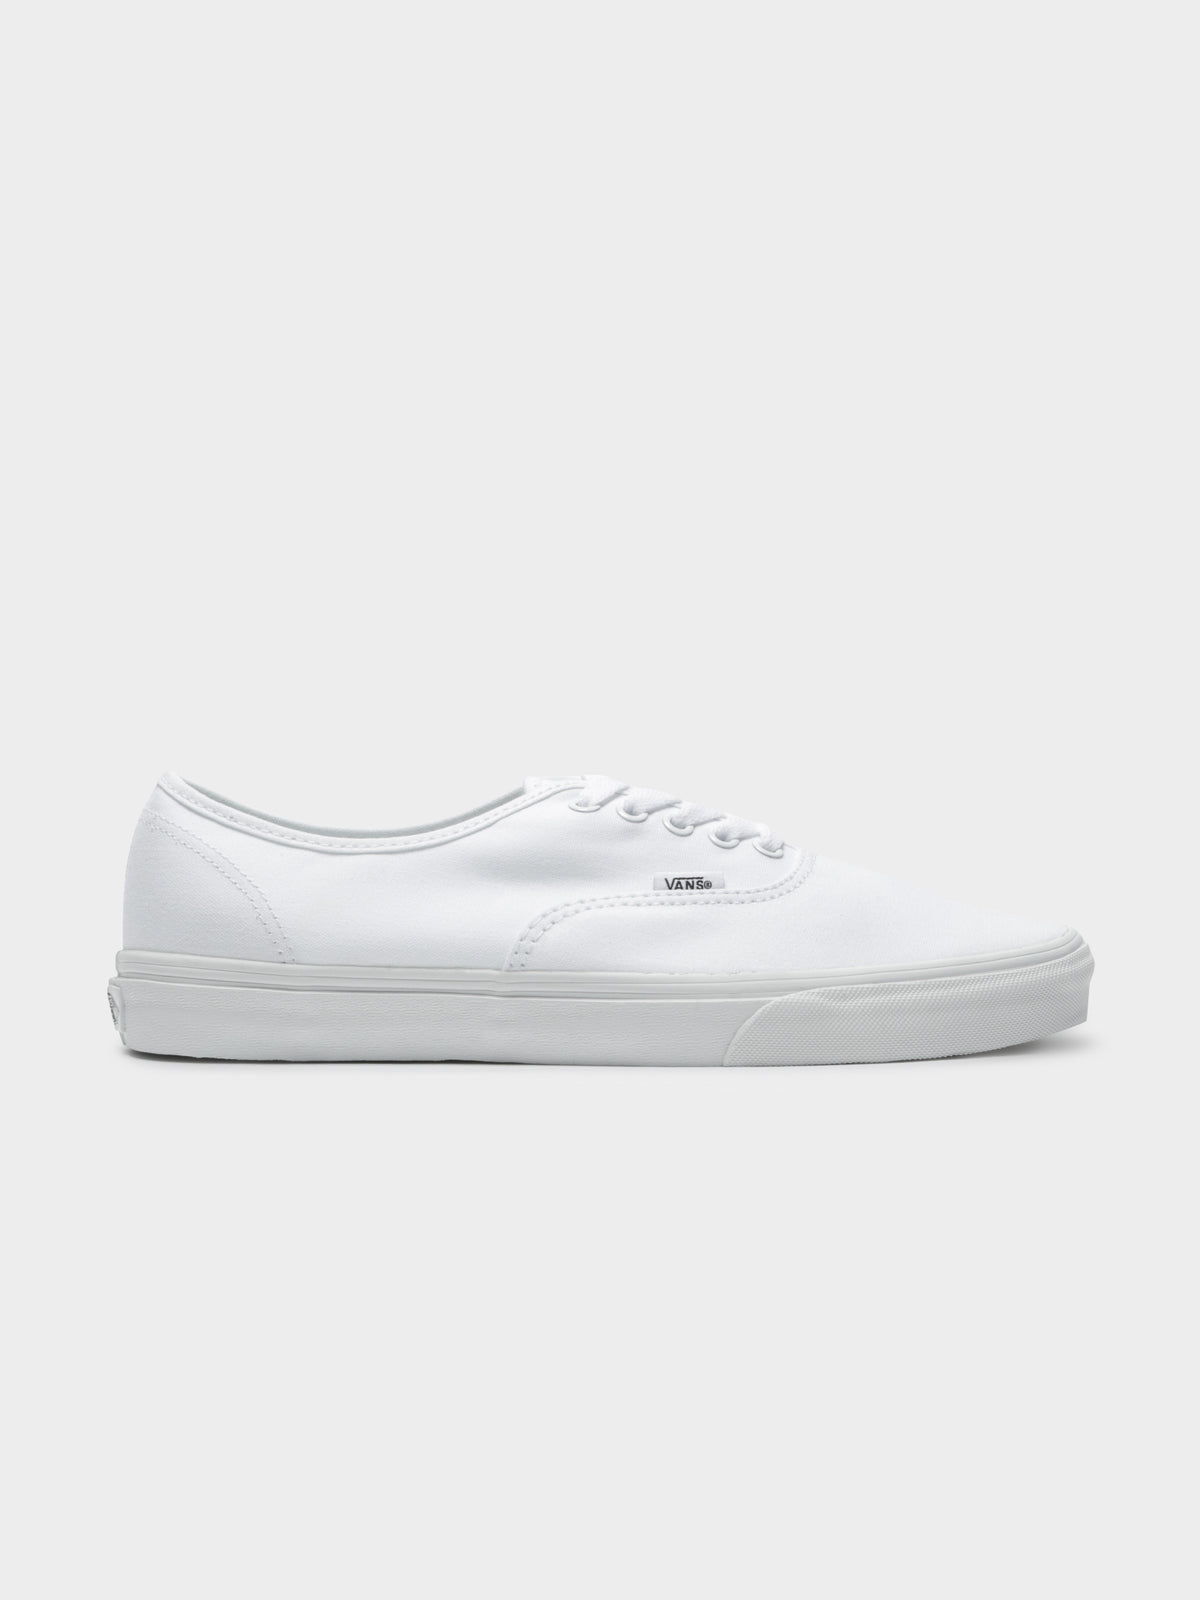 Unisex Authentic Sneakers in White